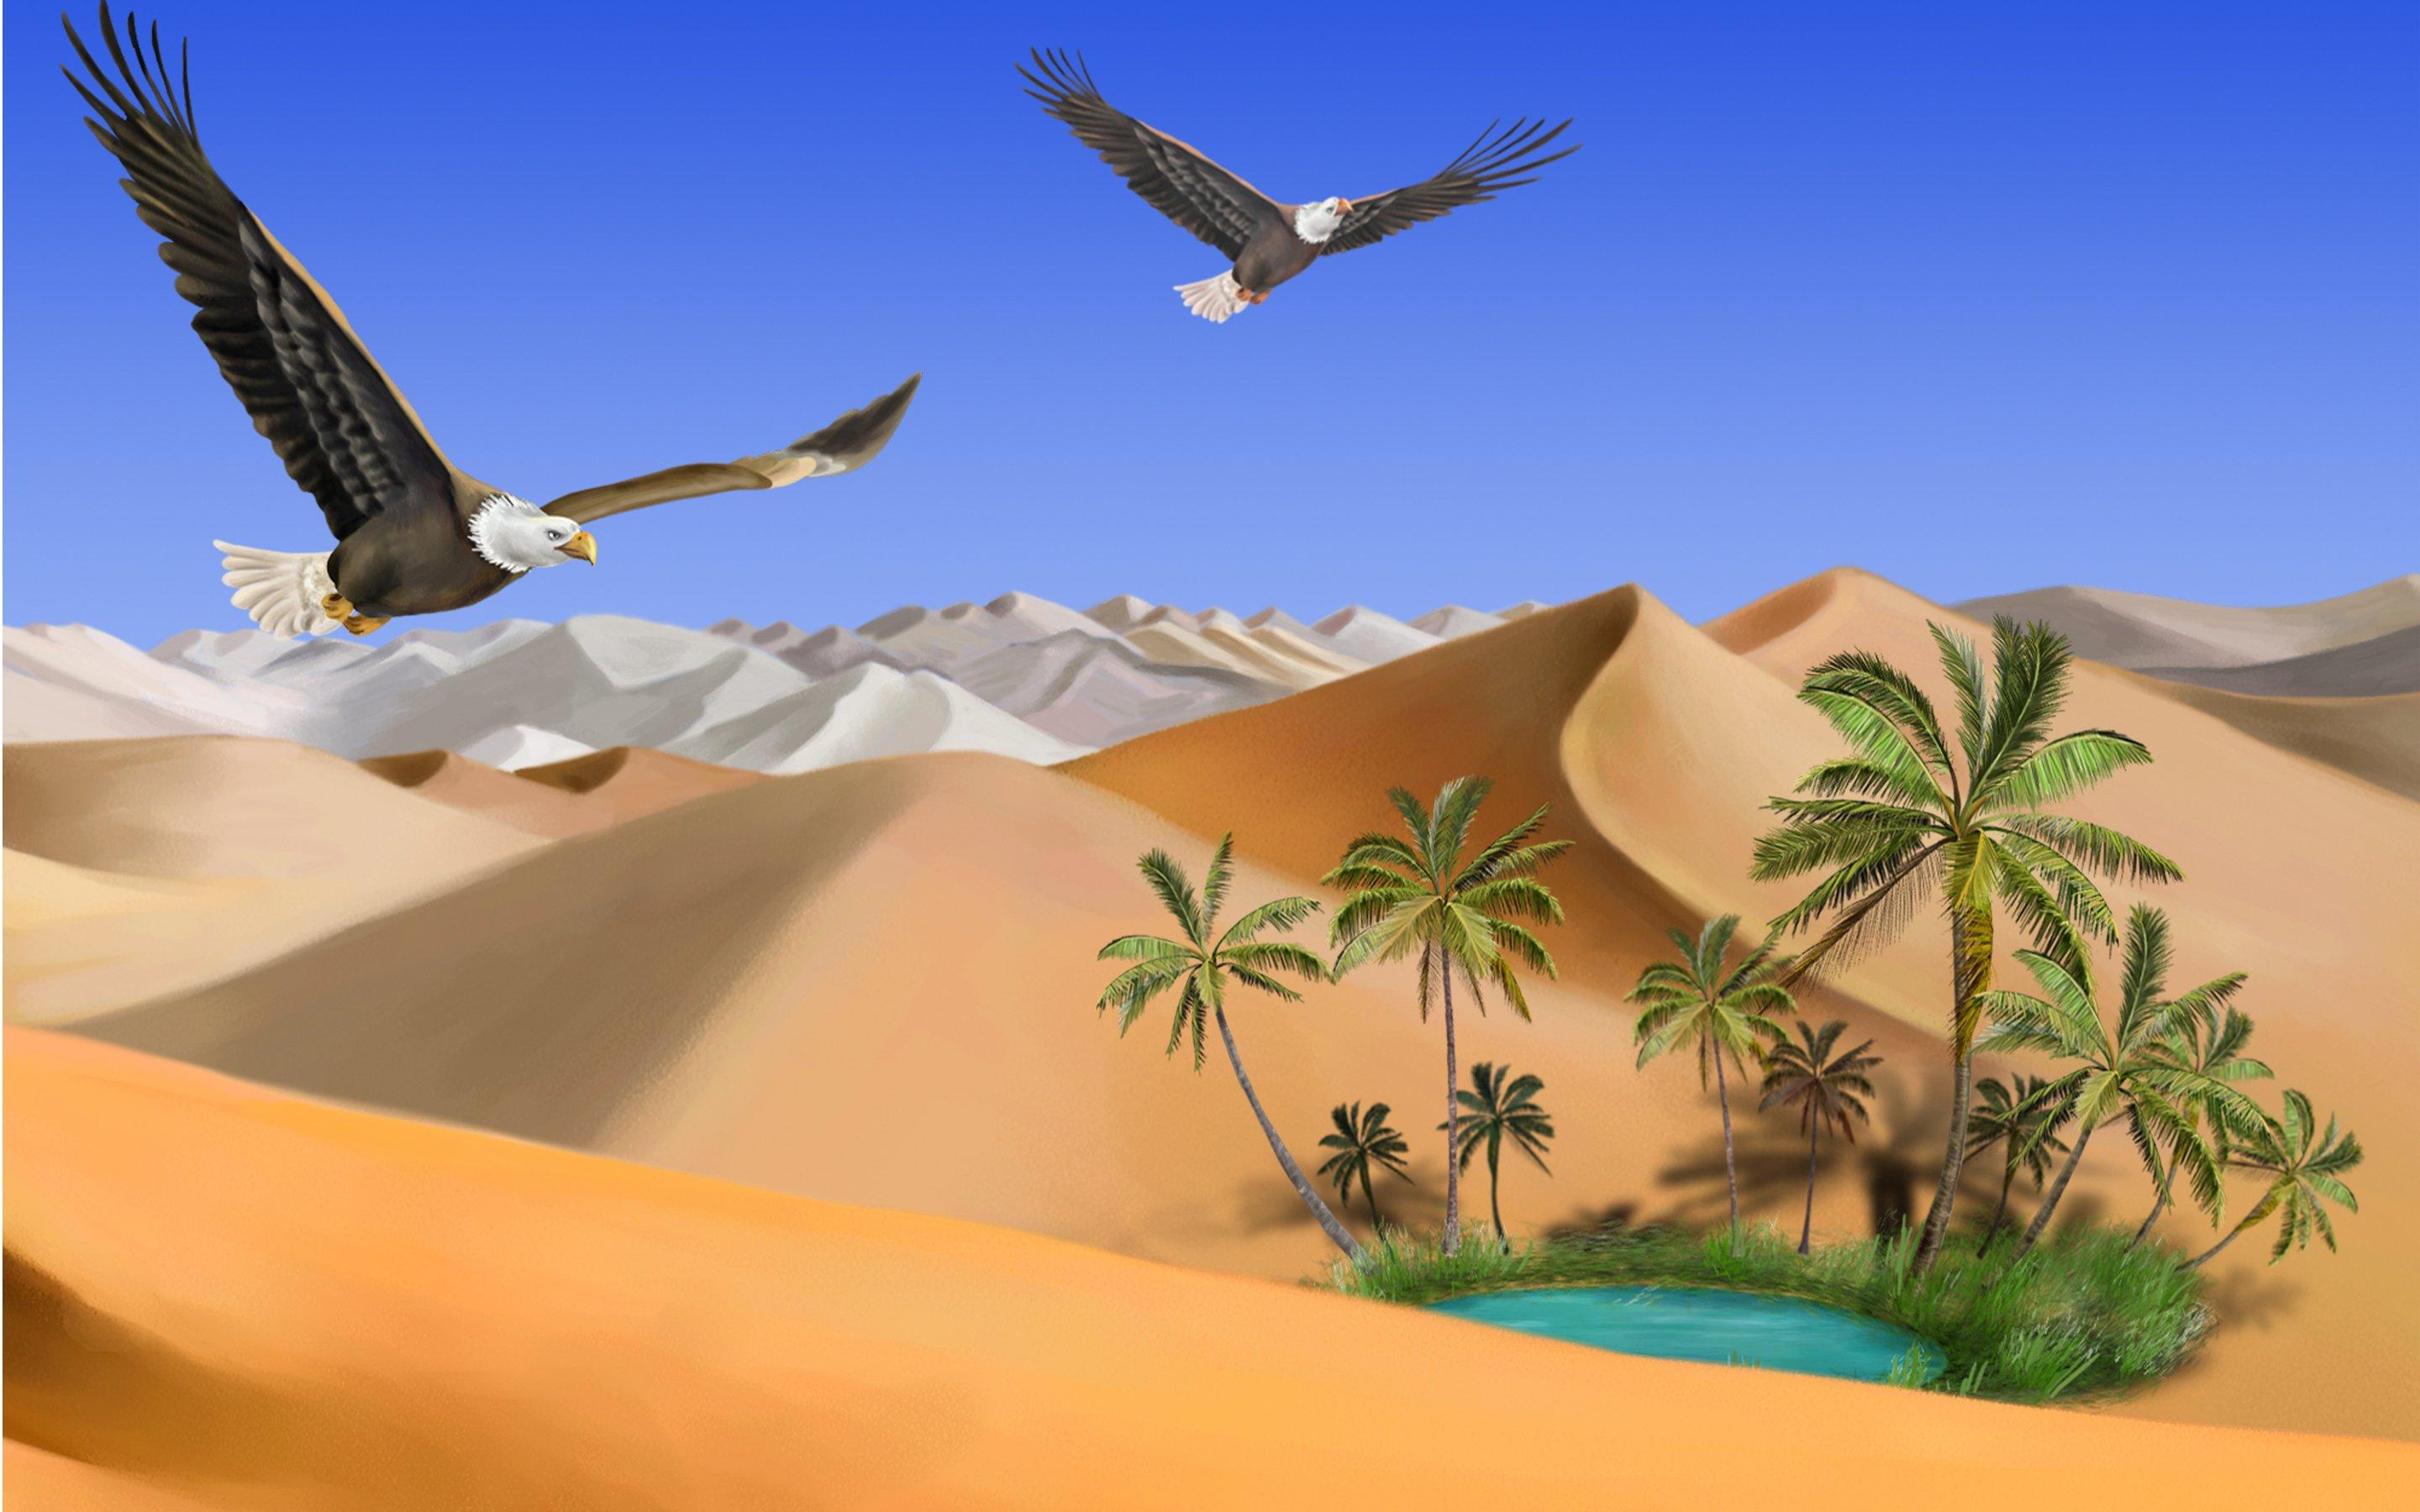 In The Desert clipart wallpaper – Oasis free download of